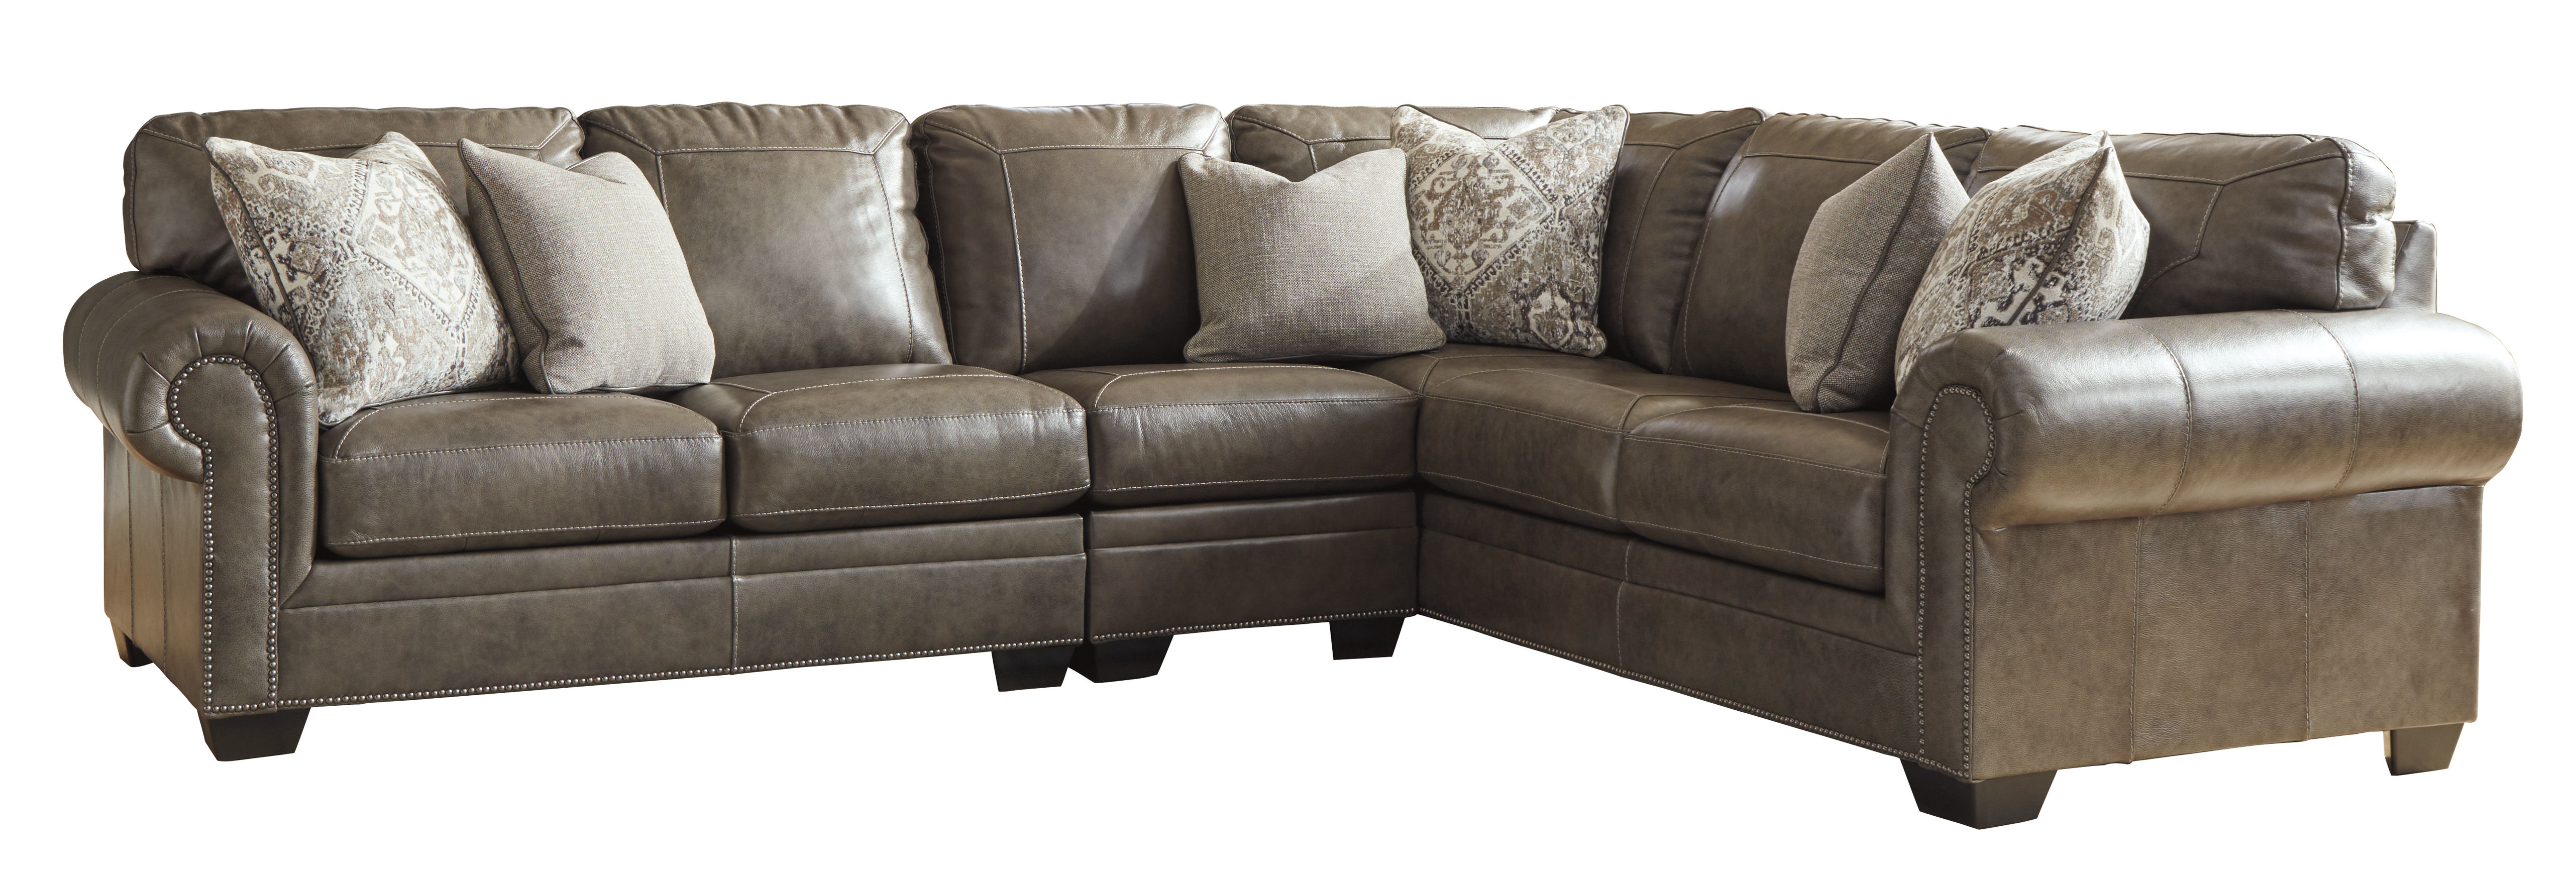 Amazing Ashley Furniture Roleson Quarry Raf Sectional Pdpeps Interior Chair Design Pdpepsorg